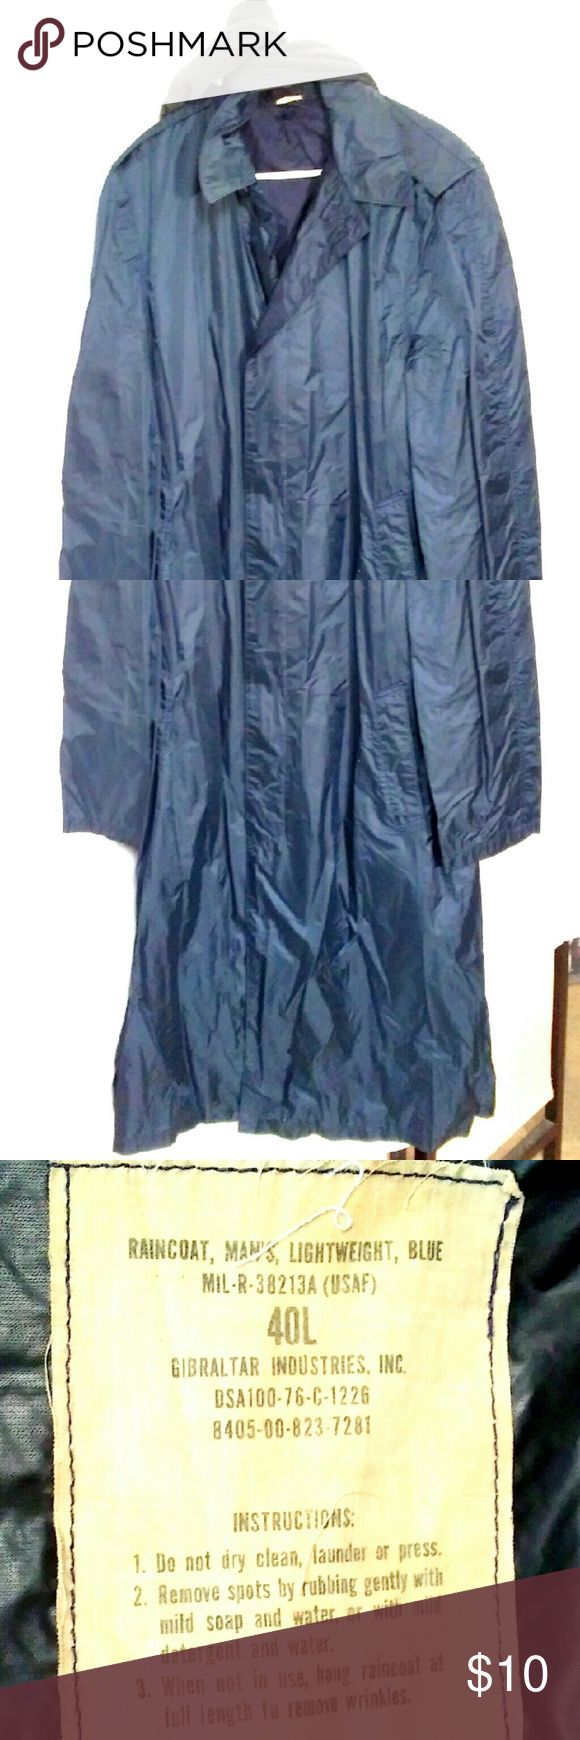 MENS RAINCOAT NEEDS NEW HOME! Rain coat is well used. Has no rips and or tears. Is also very light weight. Jackets & Coats Raincoats